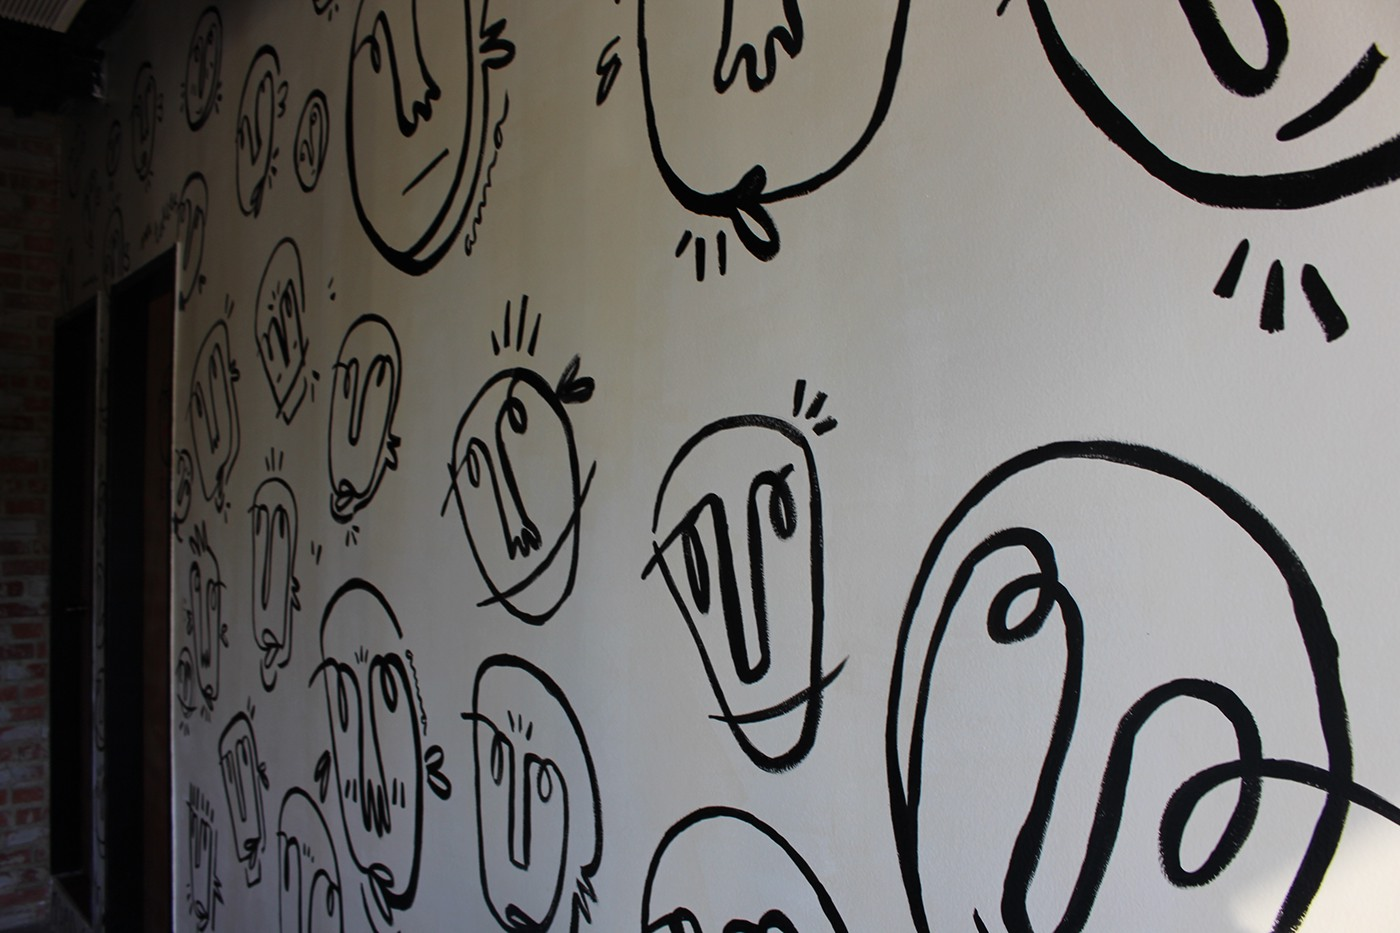 Mural faces Pizza